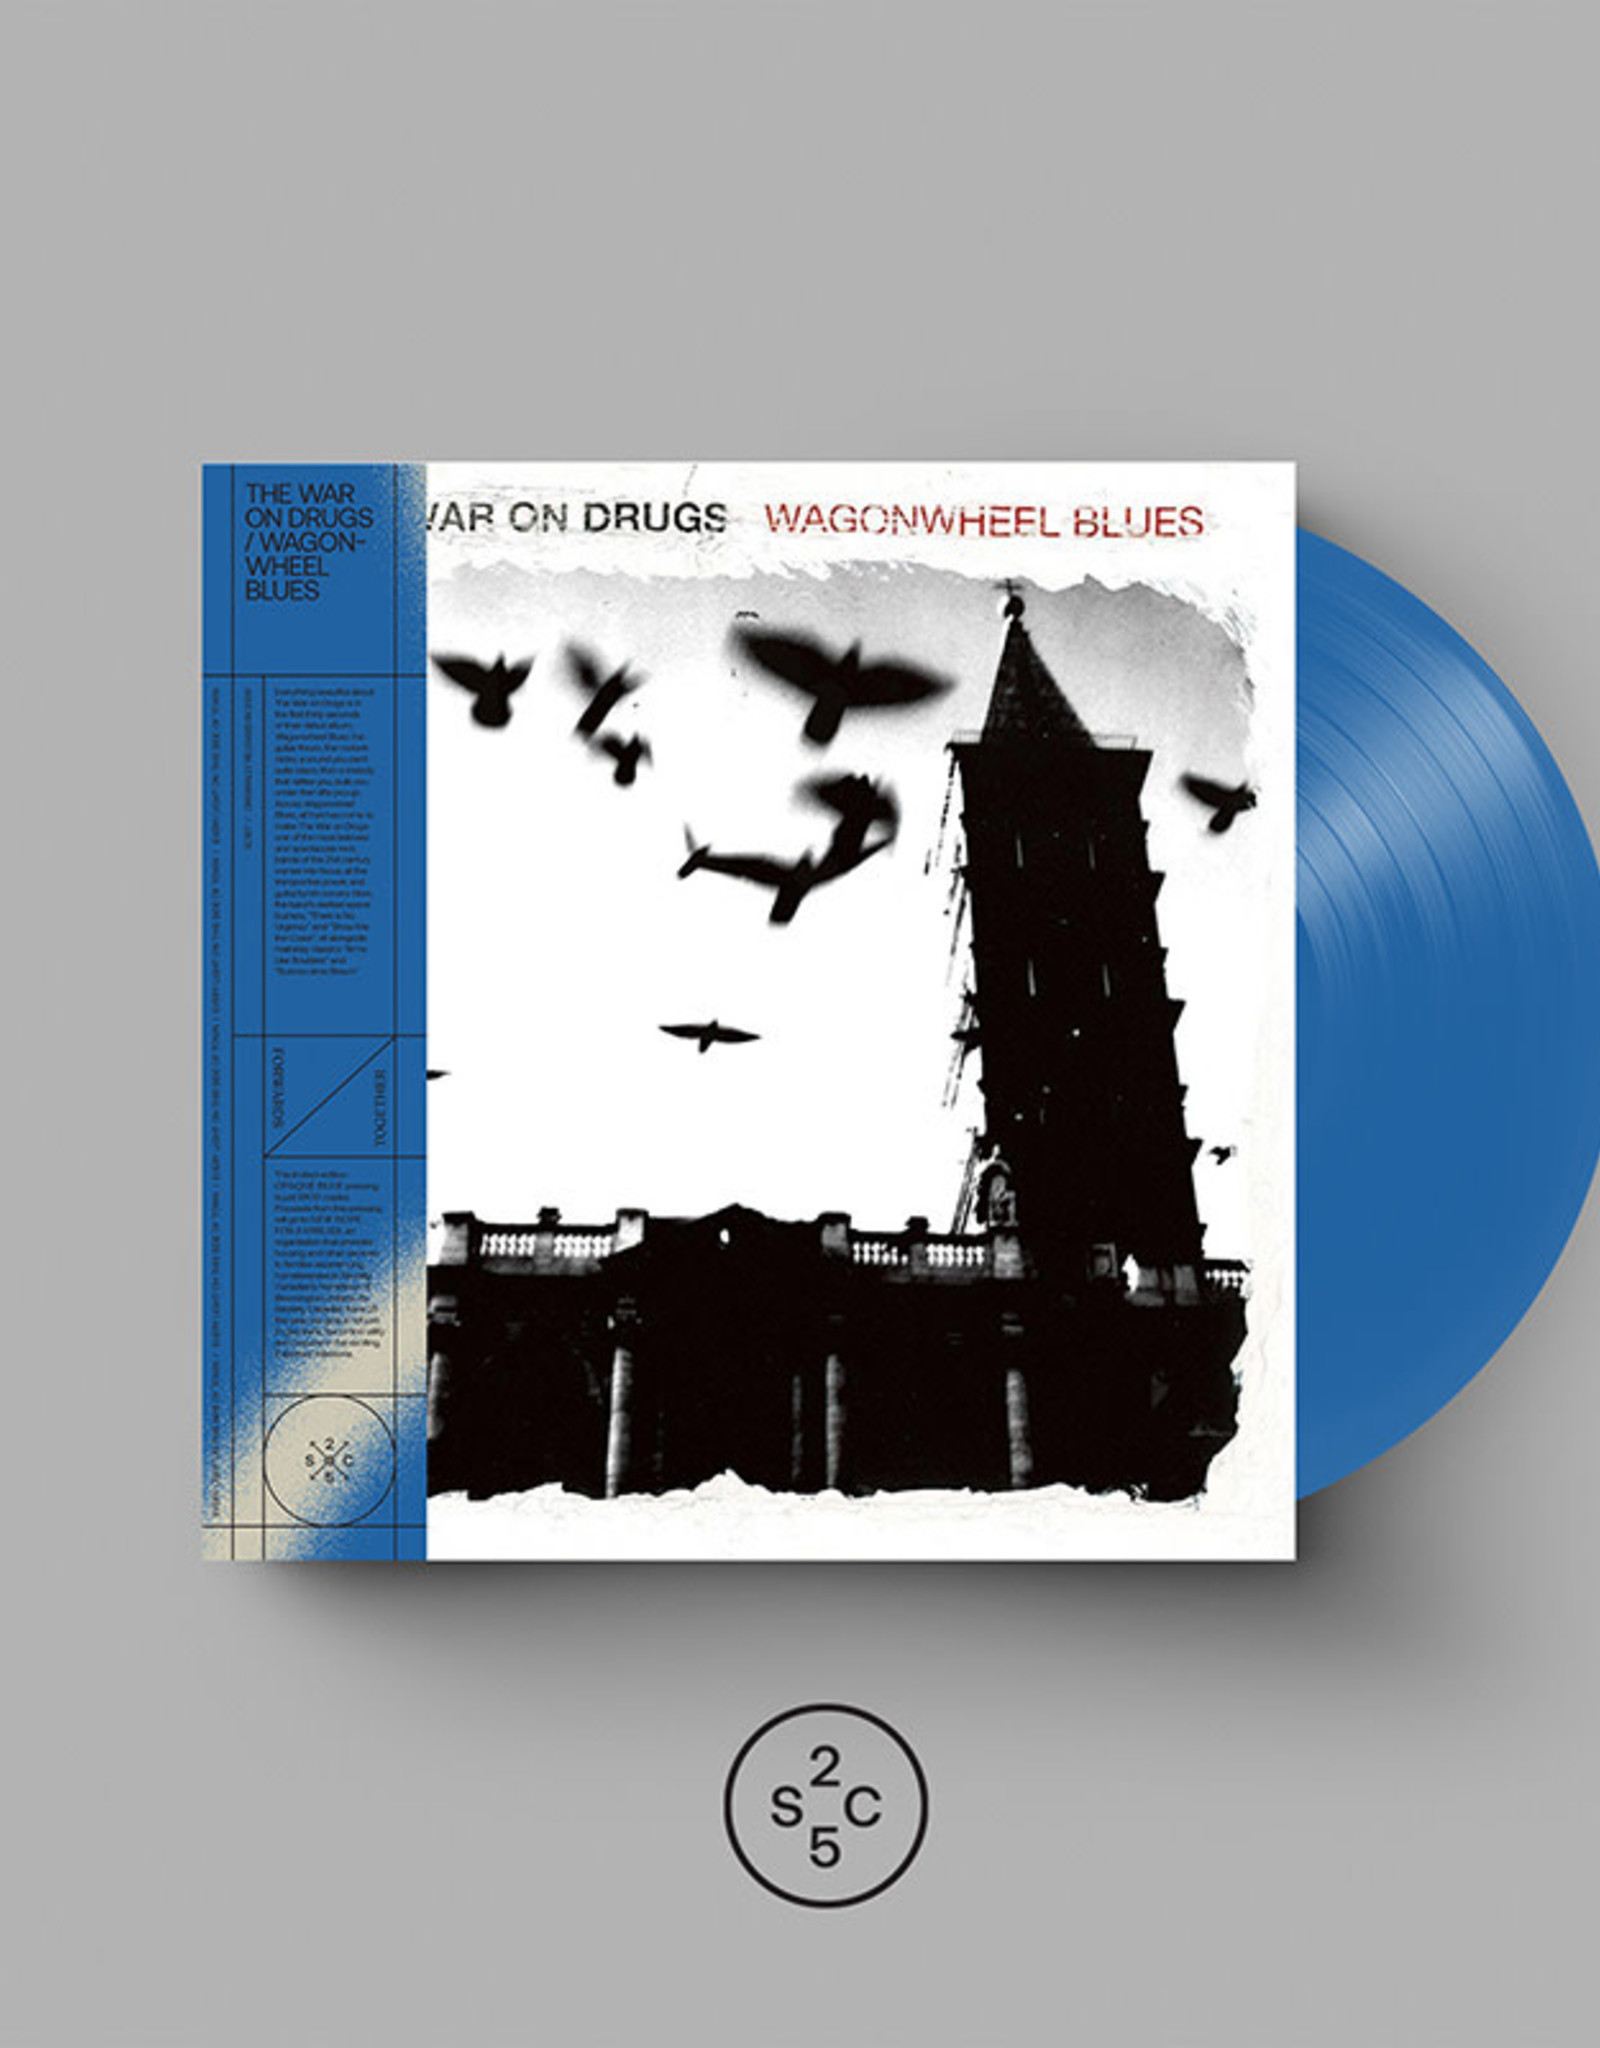 War On Drugs - Wagonwheel Blues (Secretly 25th Anniversary limited edition color vinyl with exclusive anniversary cover art + obi)